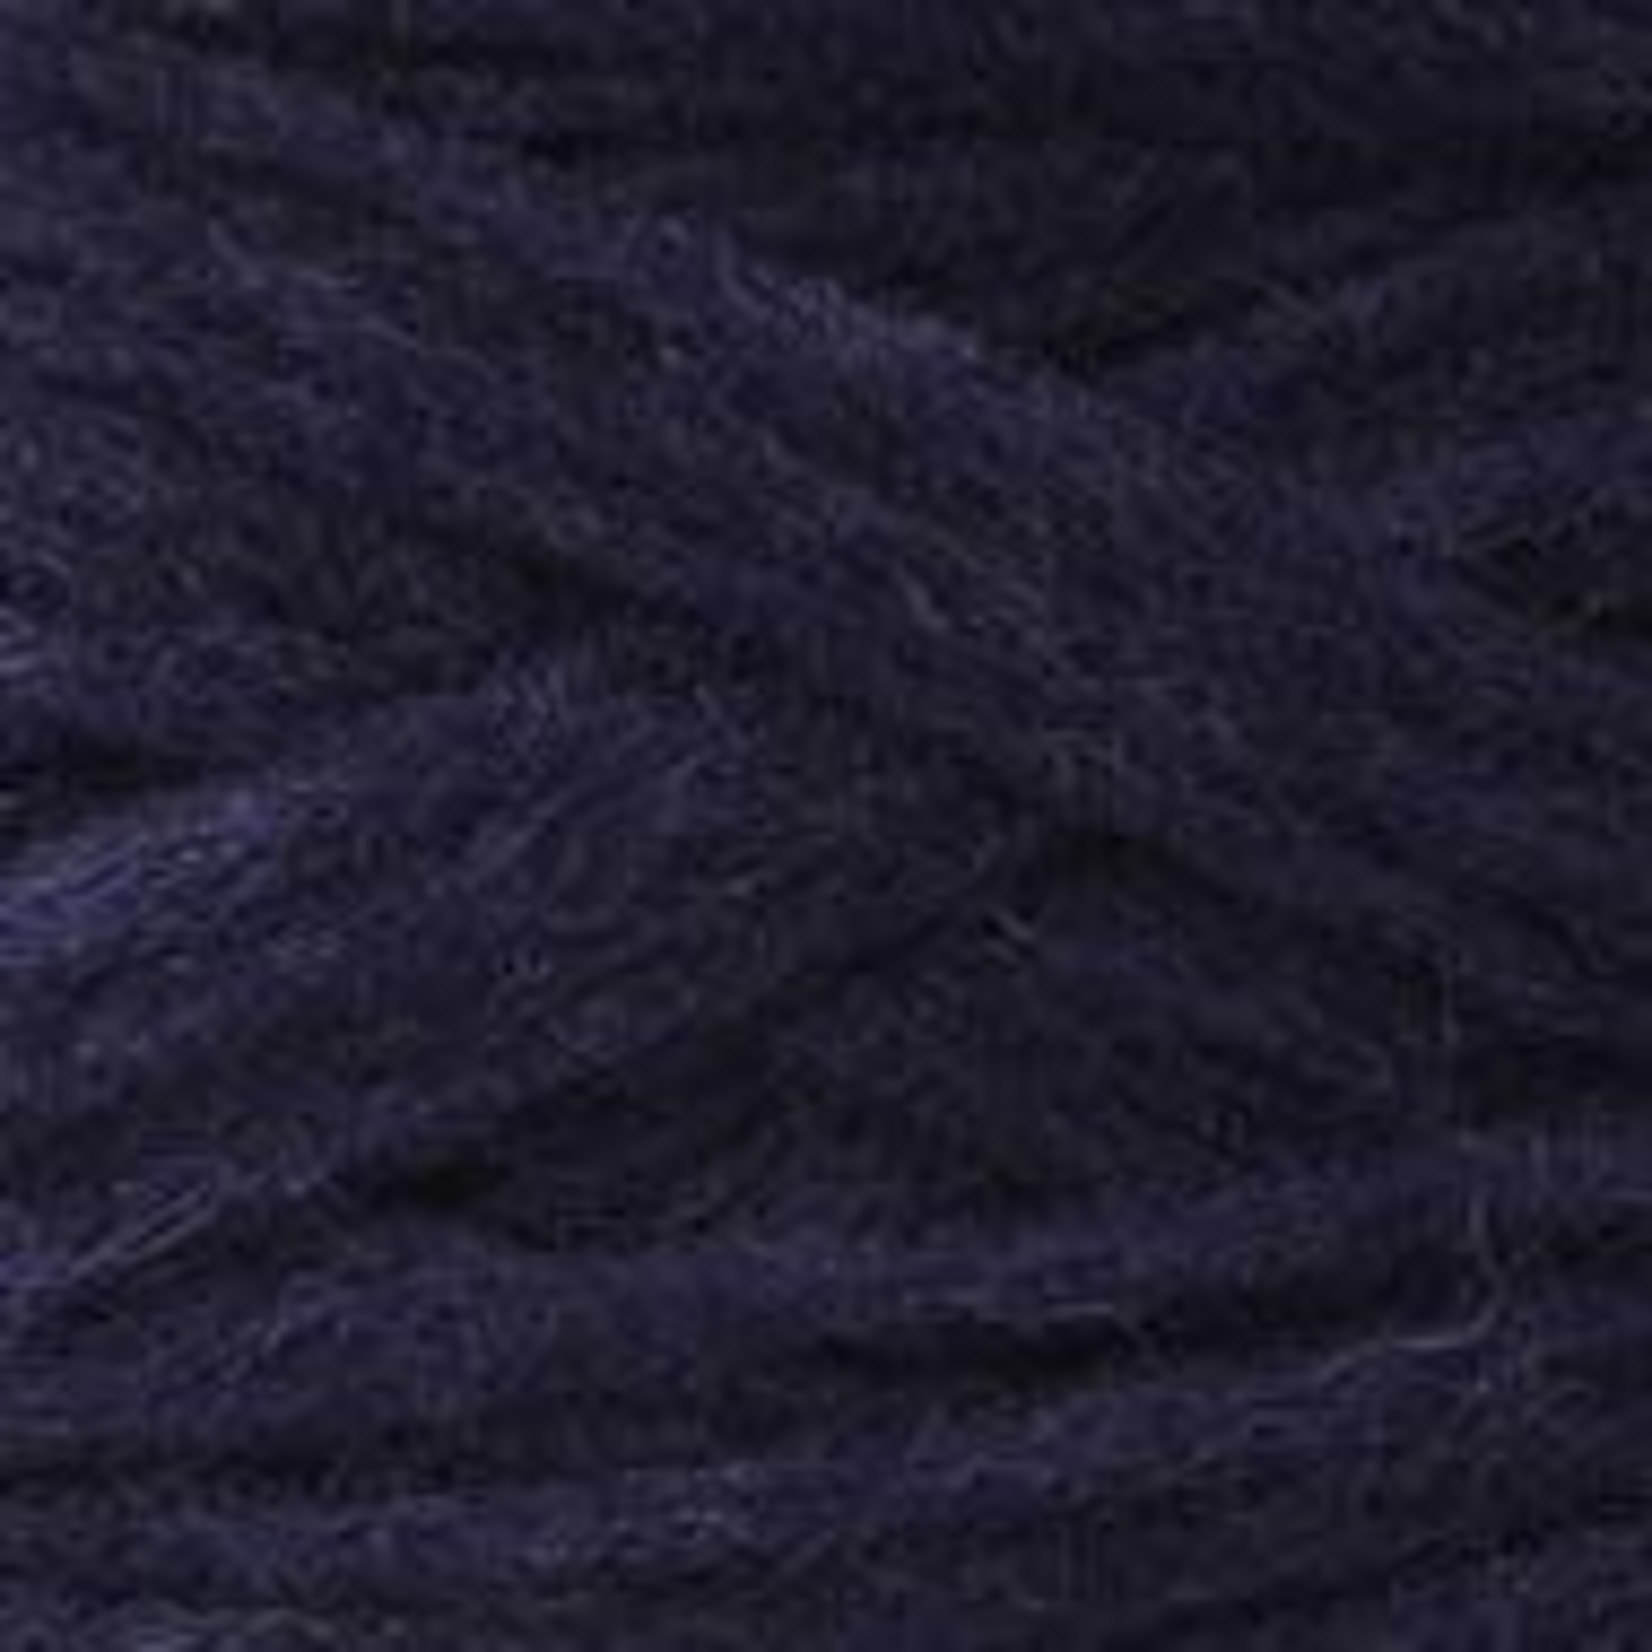 Briggs & Little Country Roving Yarn (6 - Super Bulky) By Briggs & Little